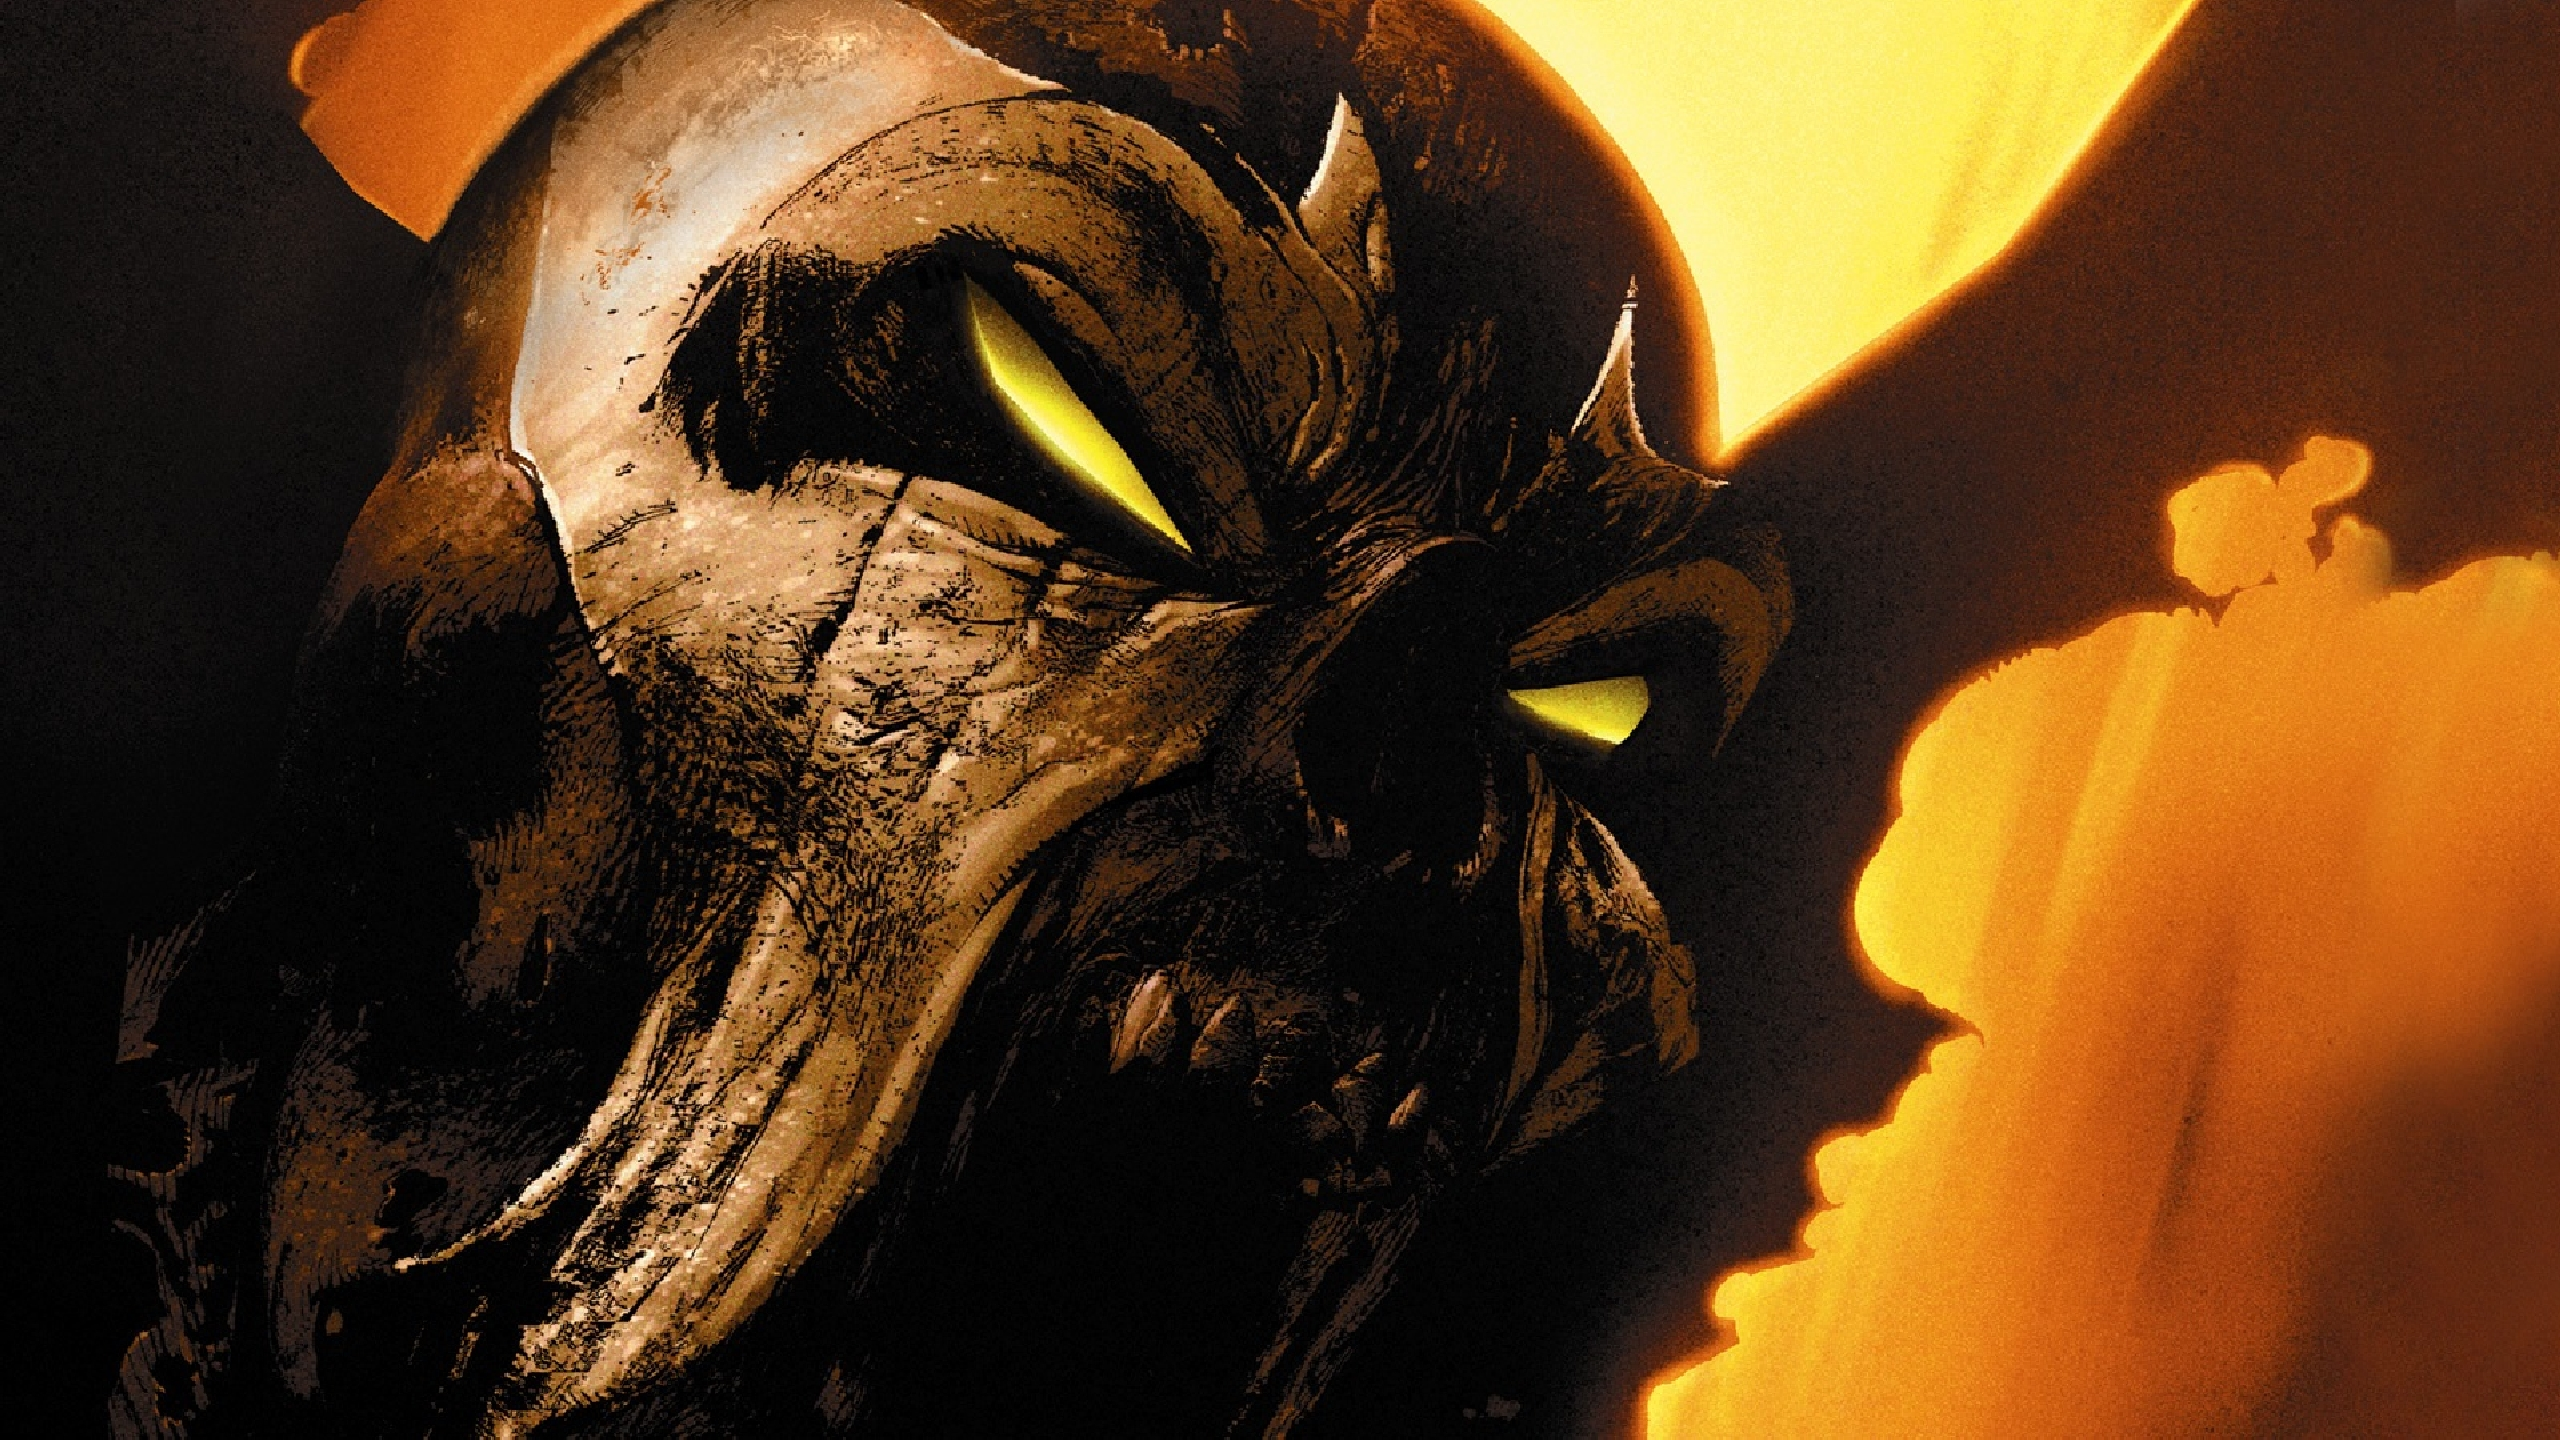 Spawn Computer Wallpapers, Desktop Backgrounds | 2560x1440 | ID:325004